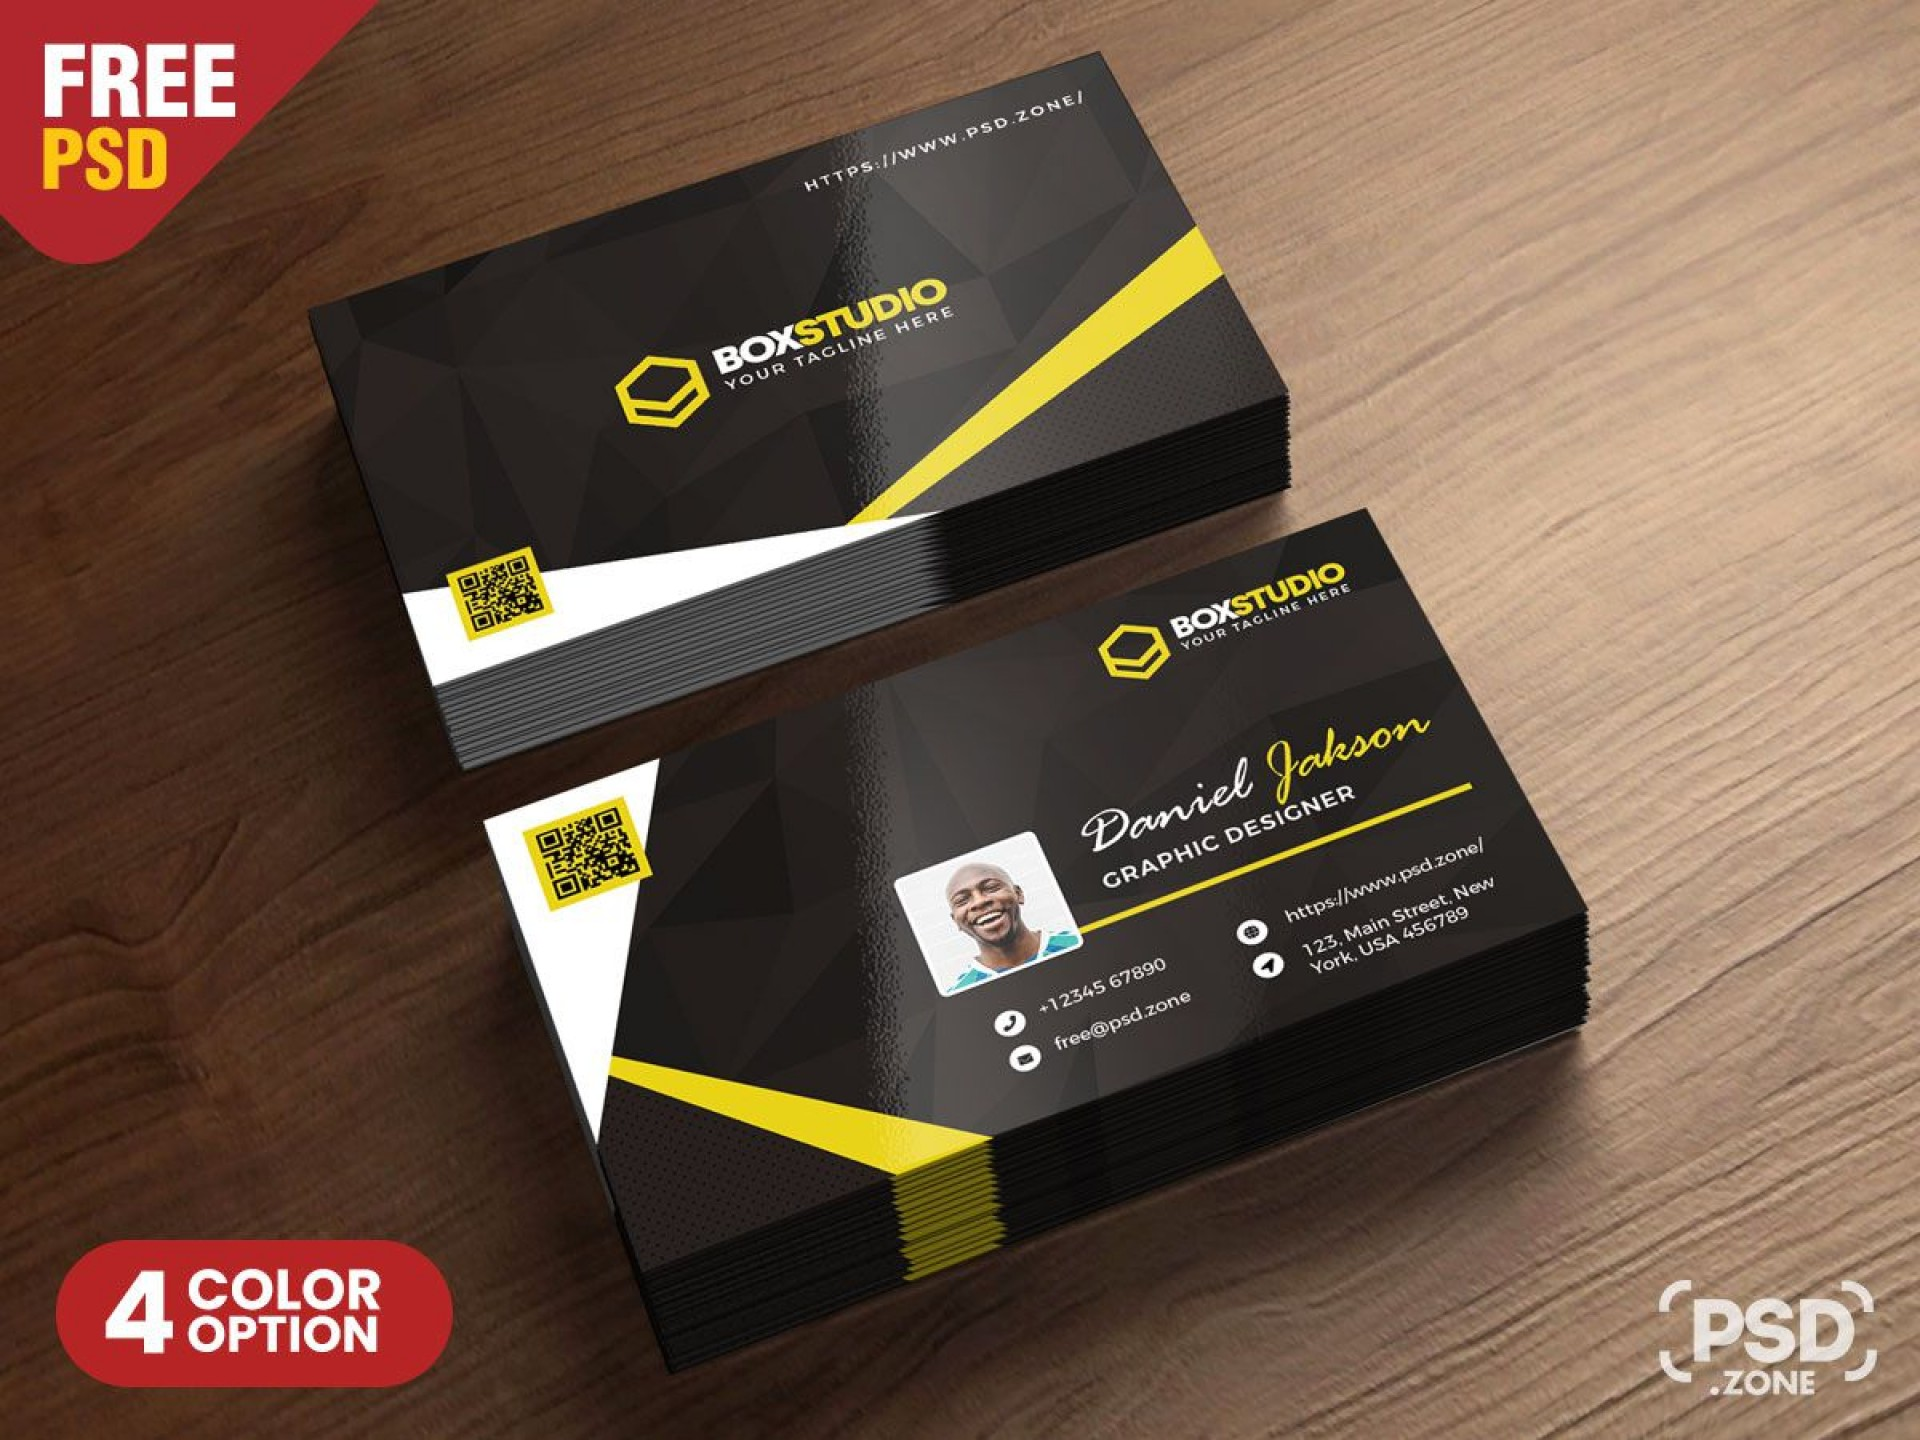 007 Stupendou Psd Busines Card Template Highest Quality  With Bleed And Crop Mark Vistaprint Free1920